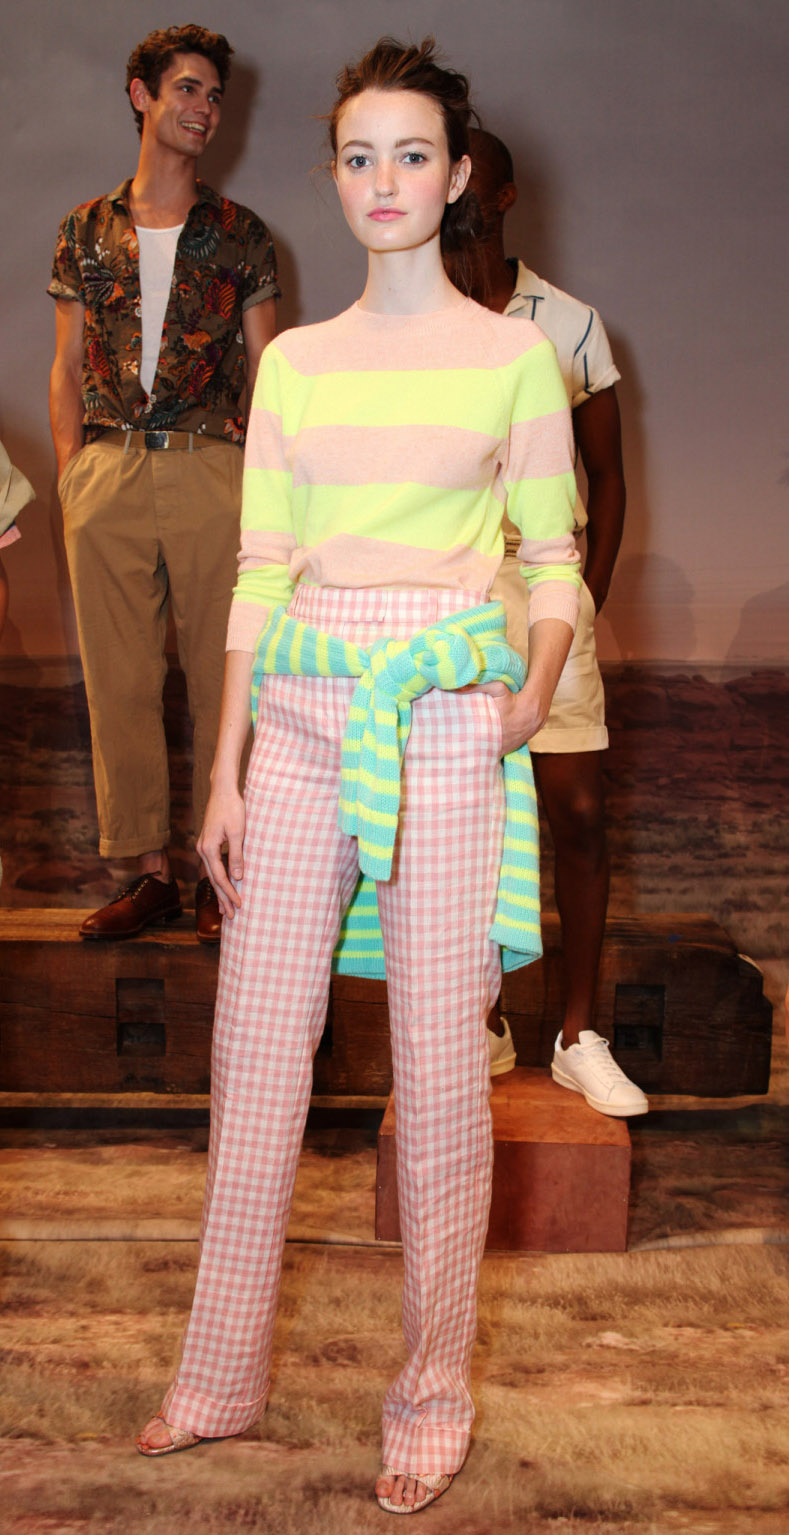 r-pink-light-wideleg-pants-yellow-sweater-stripe-bun-howtowear-style-fashion-spring-summer-mixprints-jcrew-16-gingham-hairr-lunch.jpg